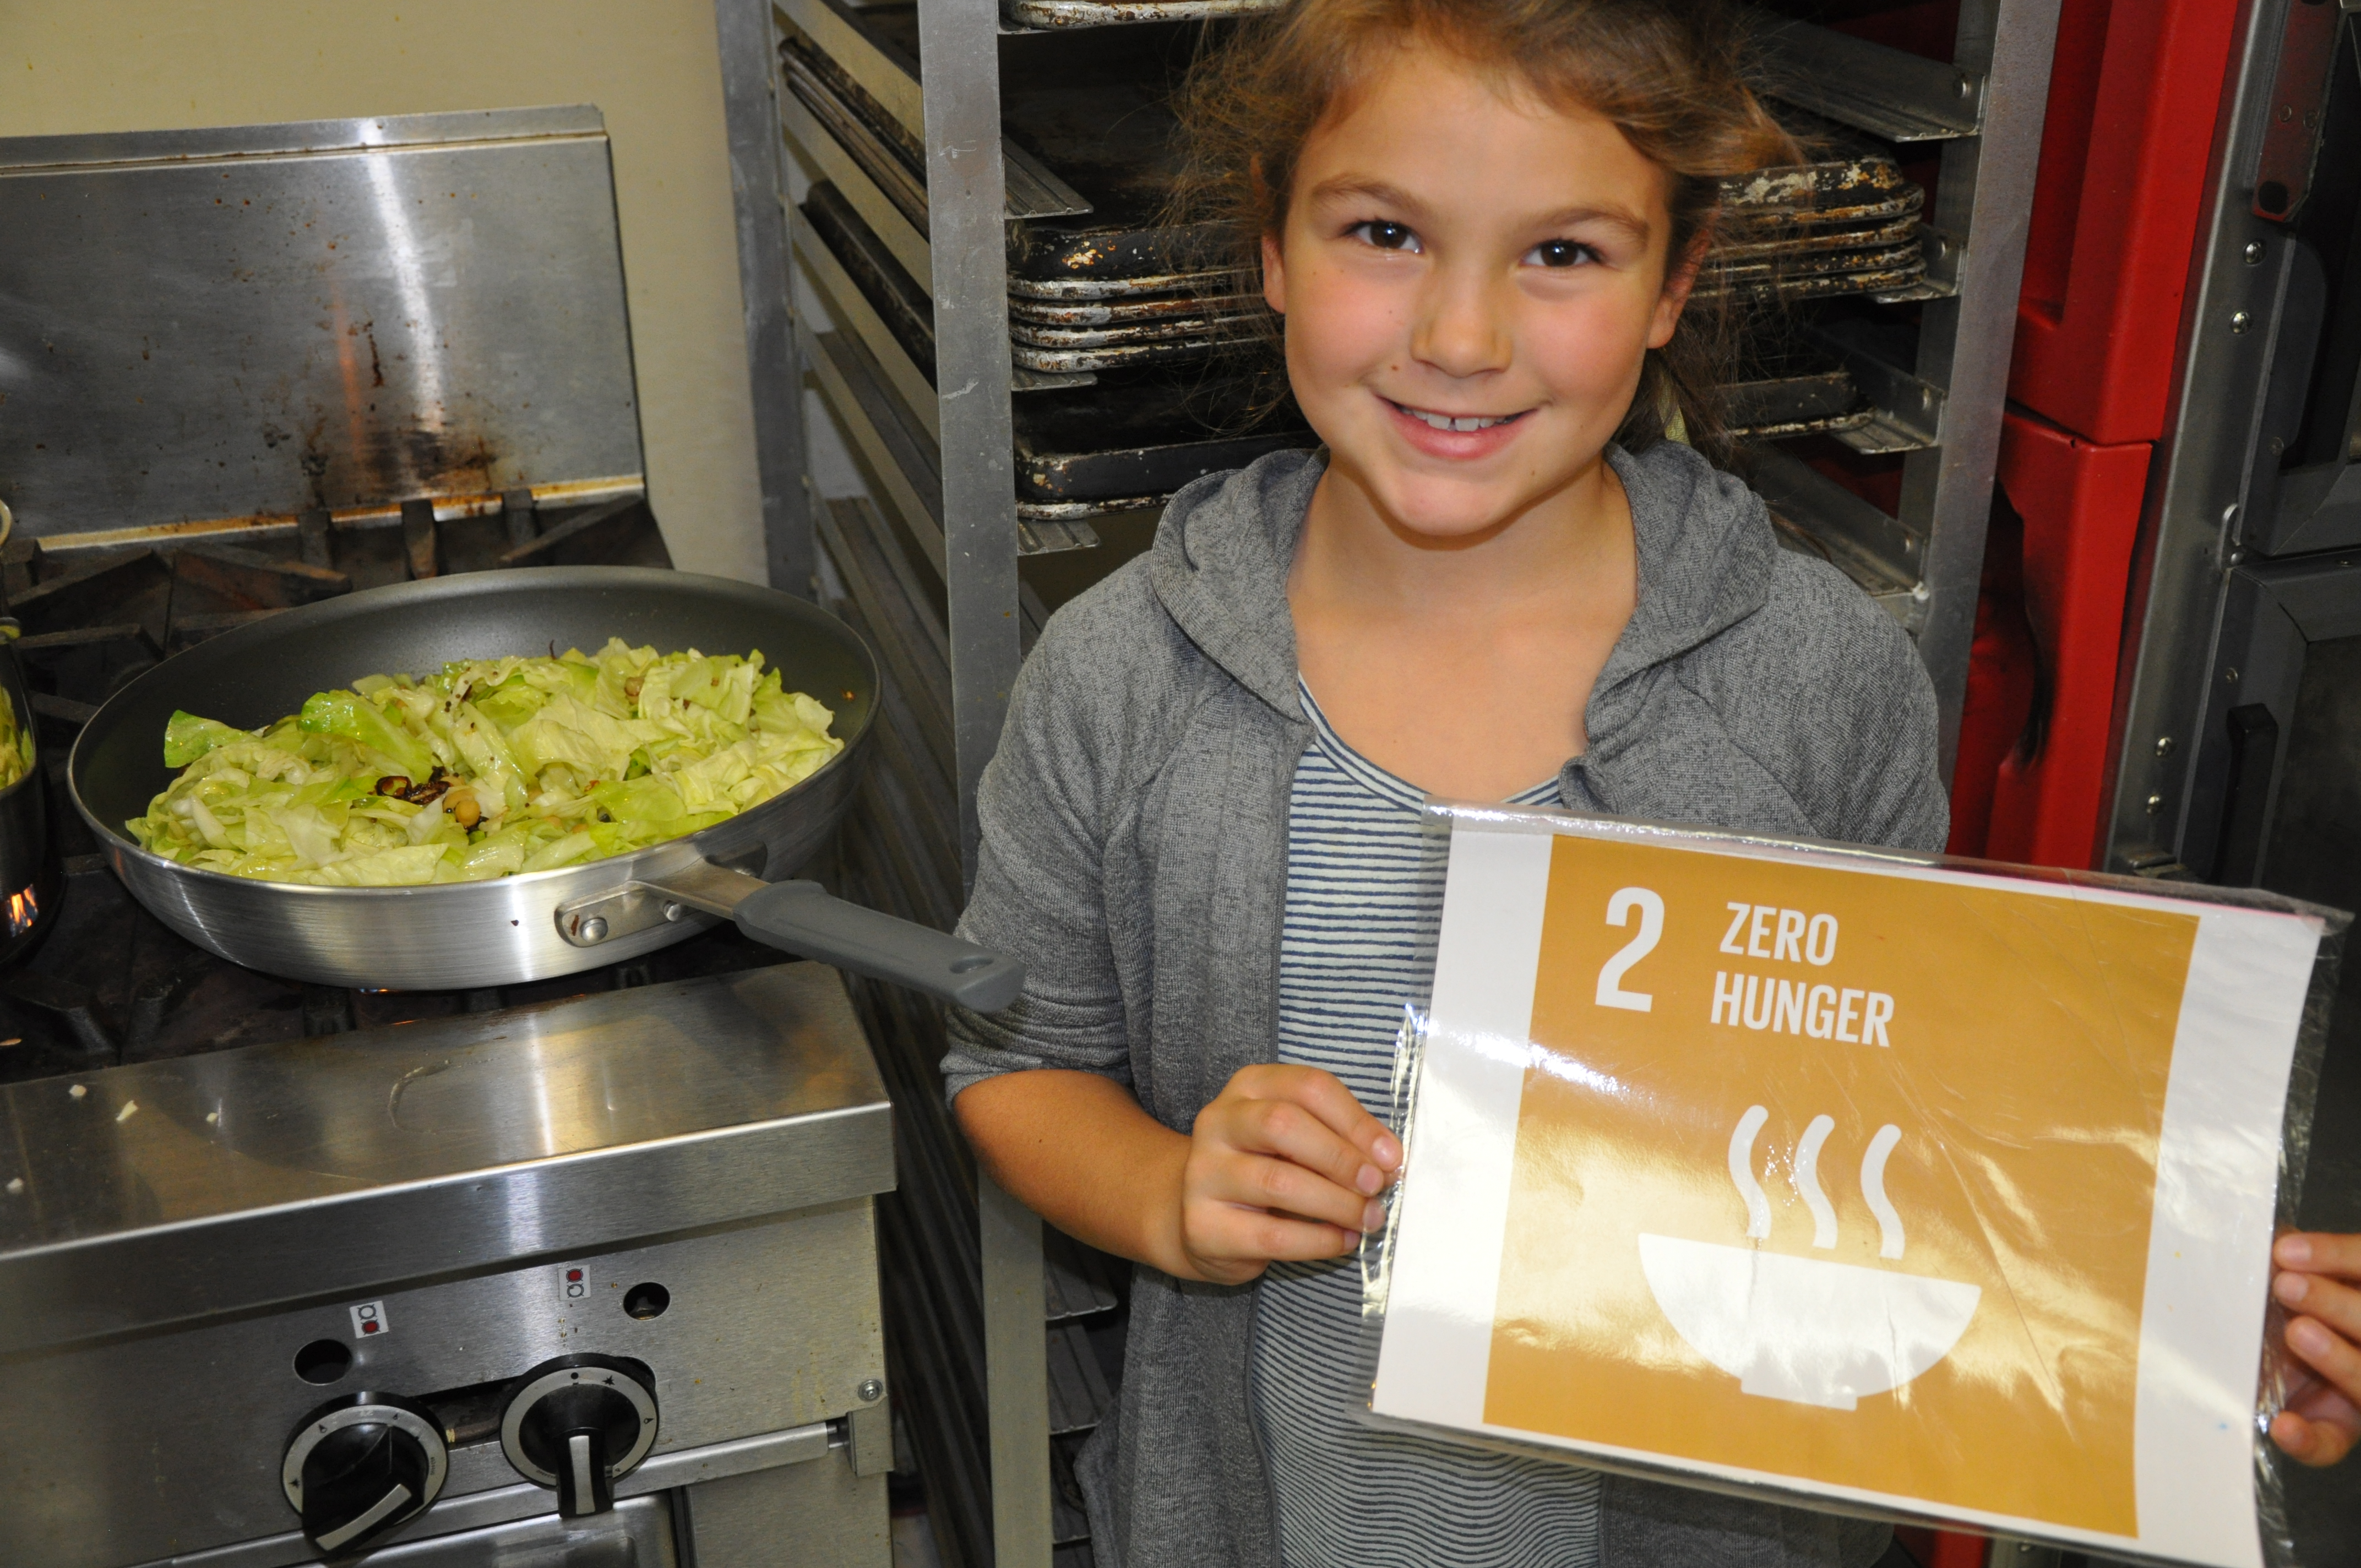 A Fletcher Elementary student poses with her harvested cabbage and UN SDG #2 Zero Hunger